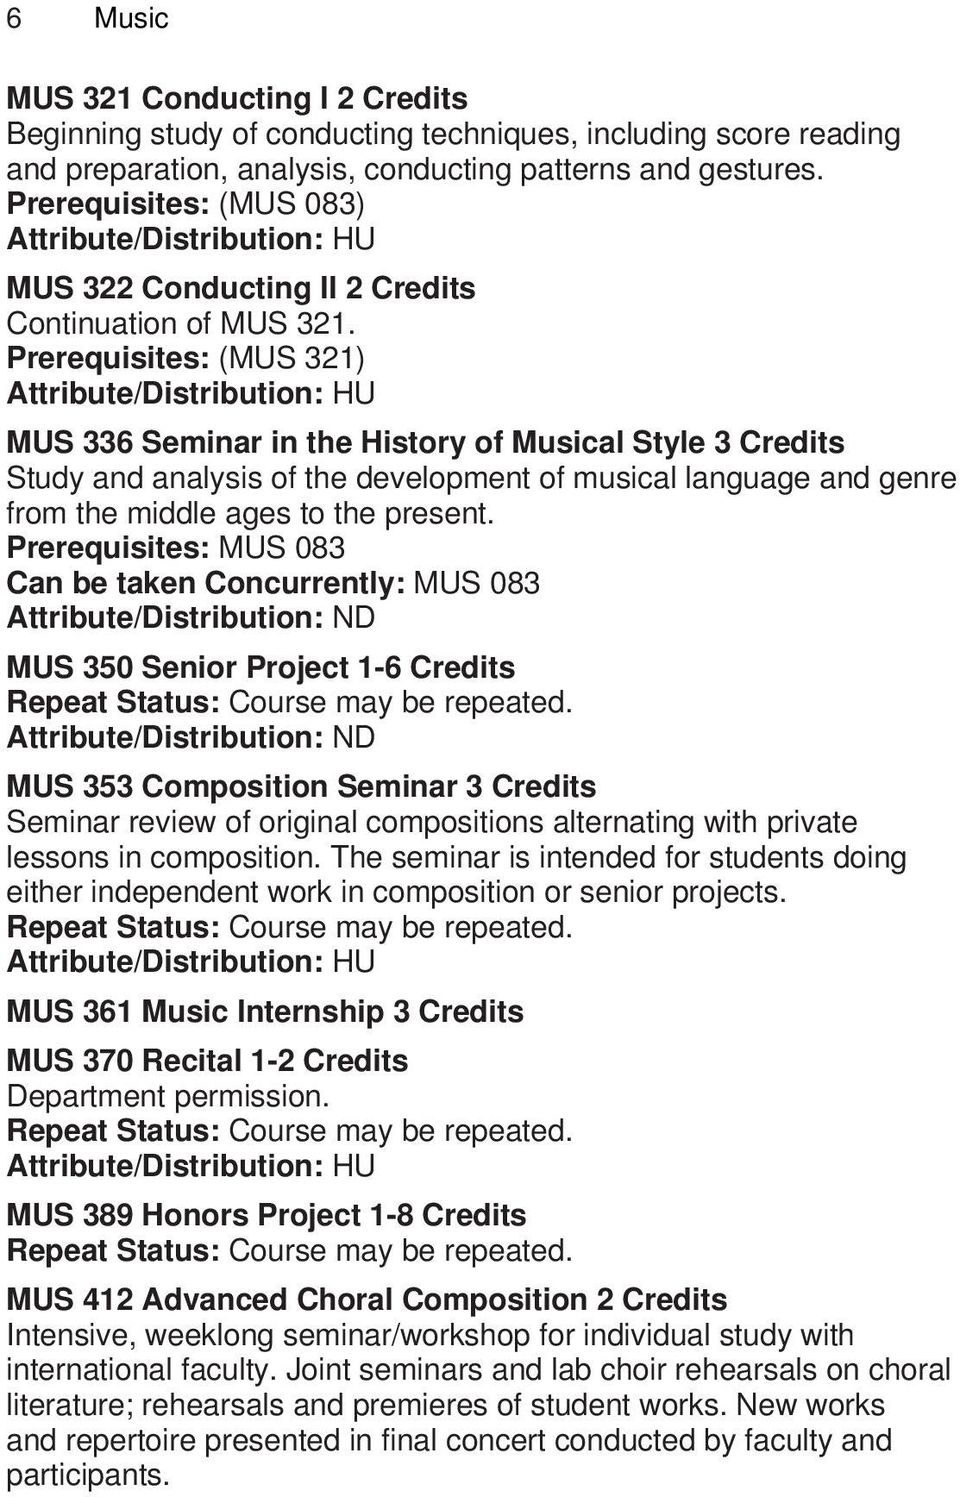 Prerequisites: (MUS 321) Seminar in the History of Musical 3 Credits Study and analysis of the development of musical language and genre from the middle ages to the present.